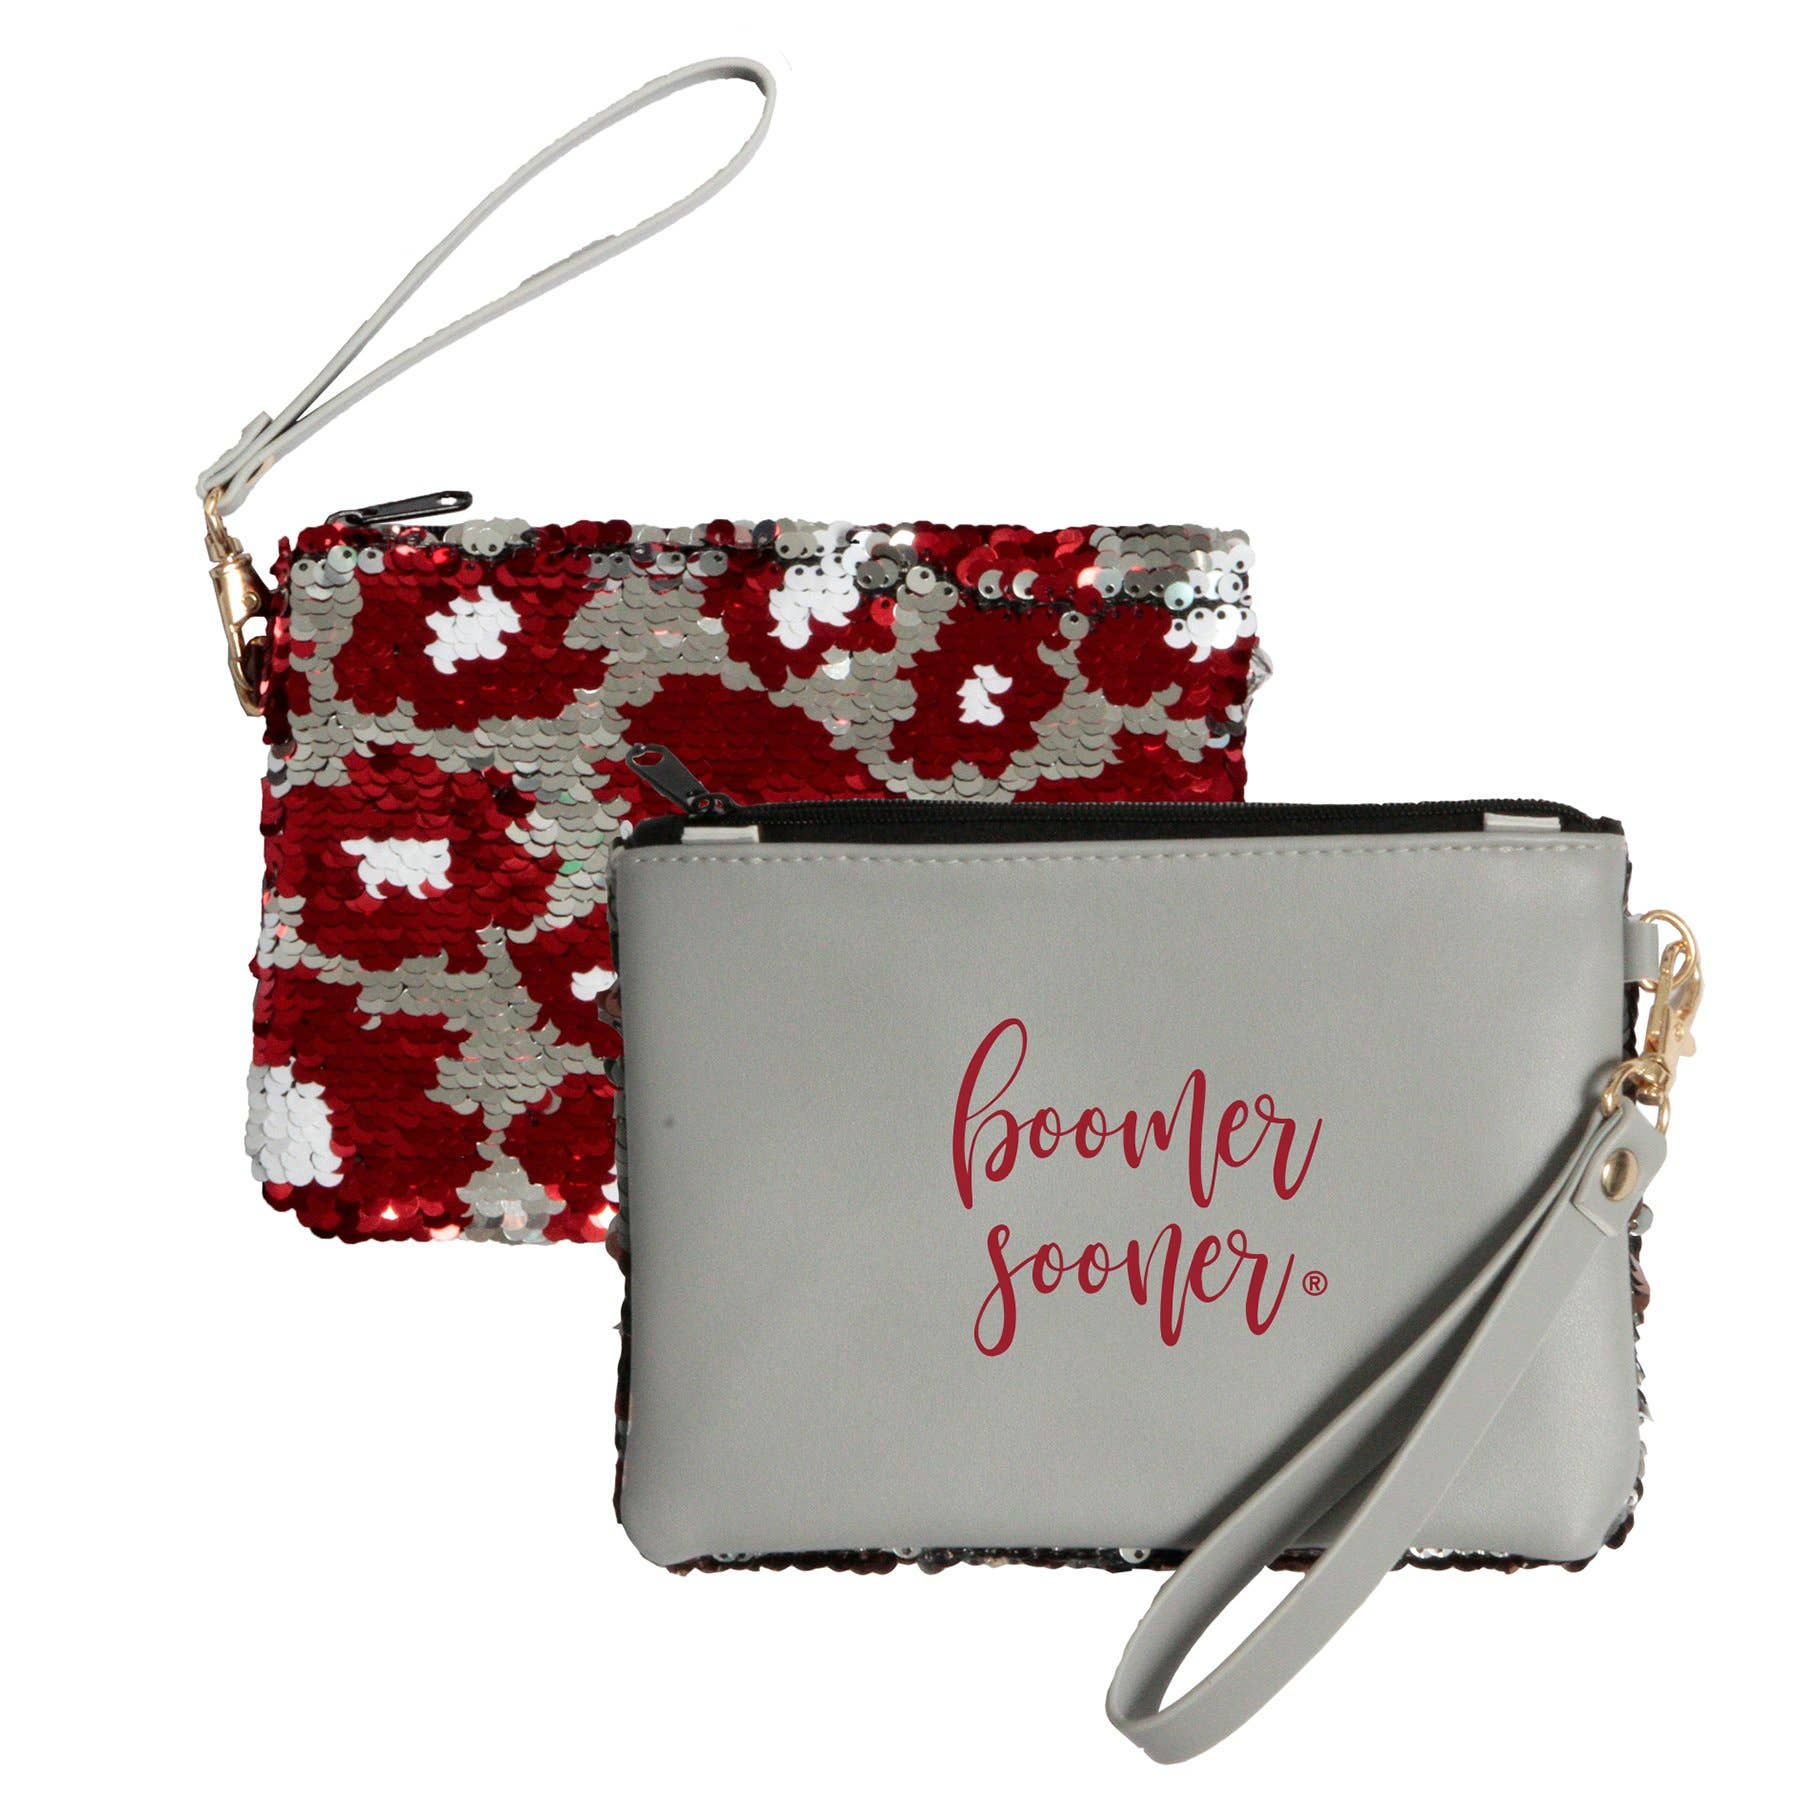 Clemson Tigers Clear Handbag//Purse and Reversible Sequined Wristlet Combo with Vegan Leather Trim and Removable Straps